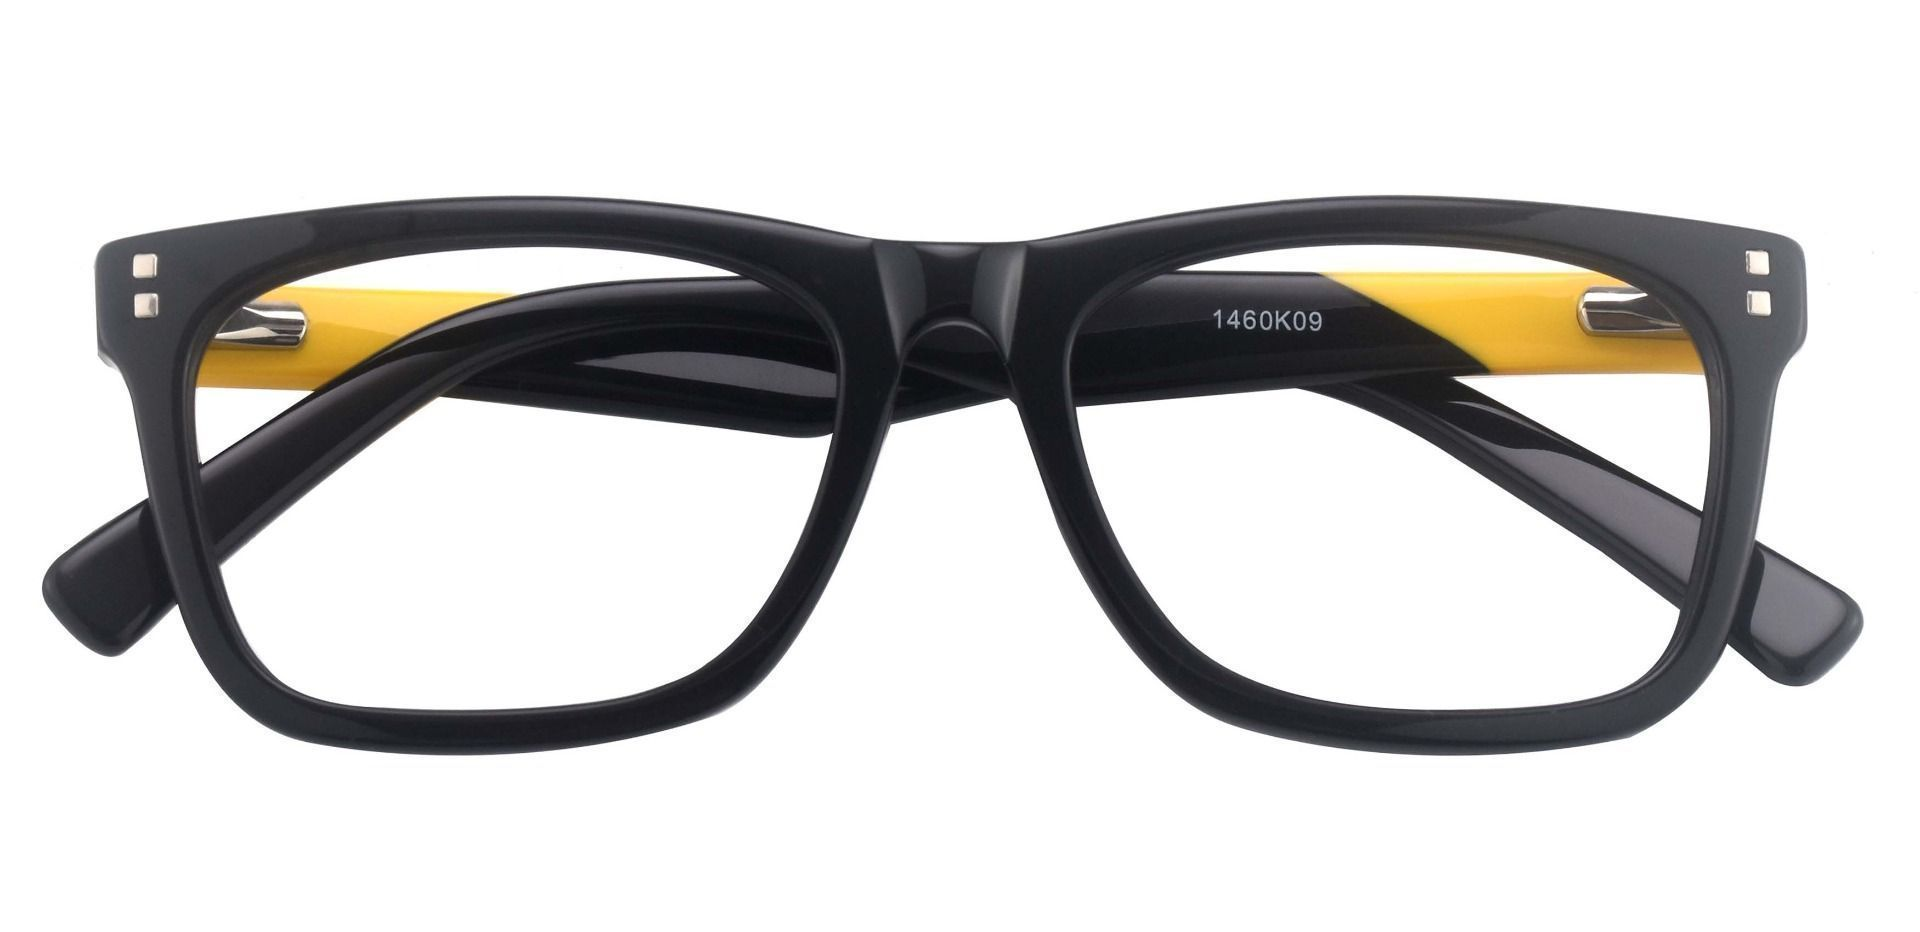 Liberty Rectangle Eyeglasses Frame - The Frame Is Black And Gold